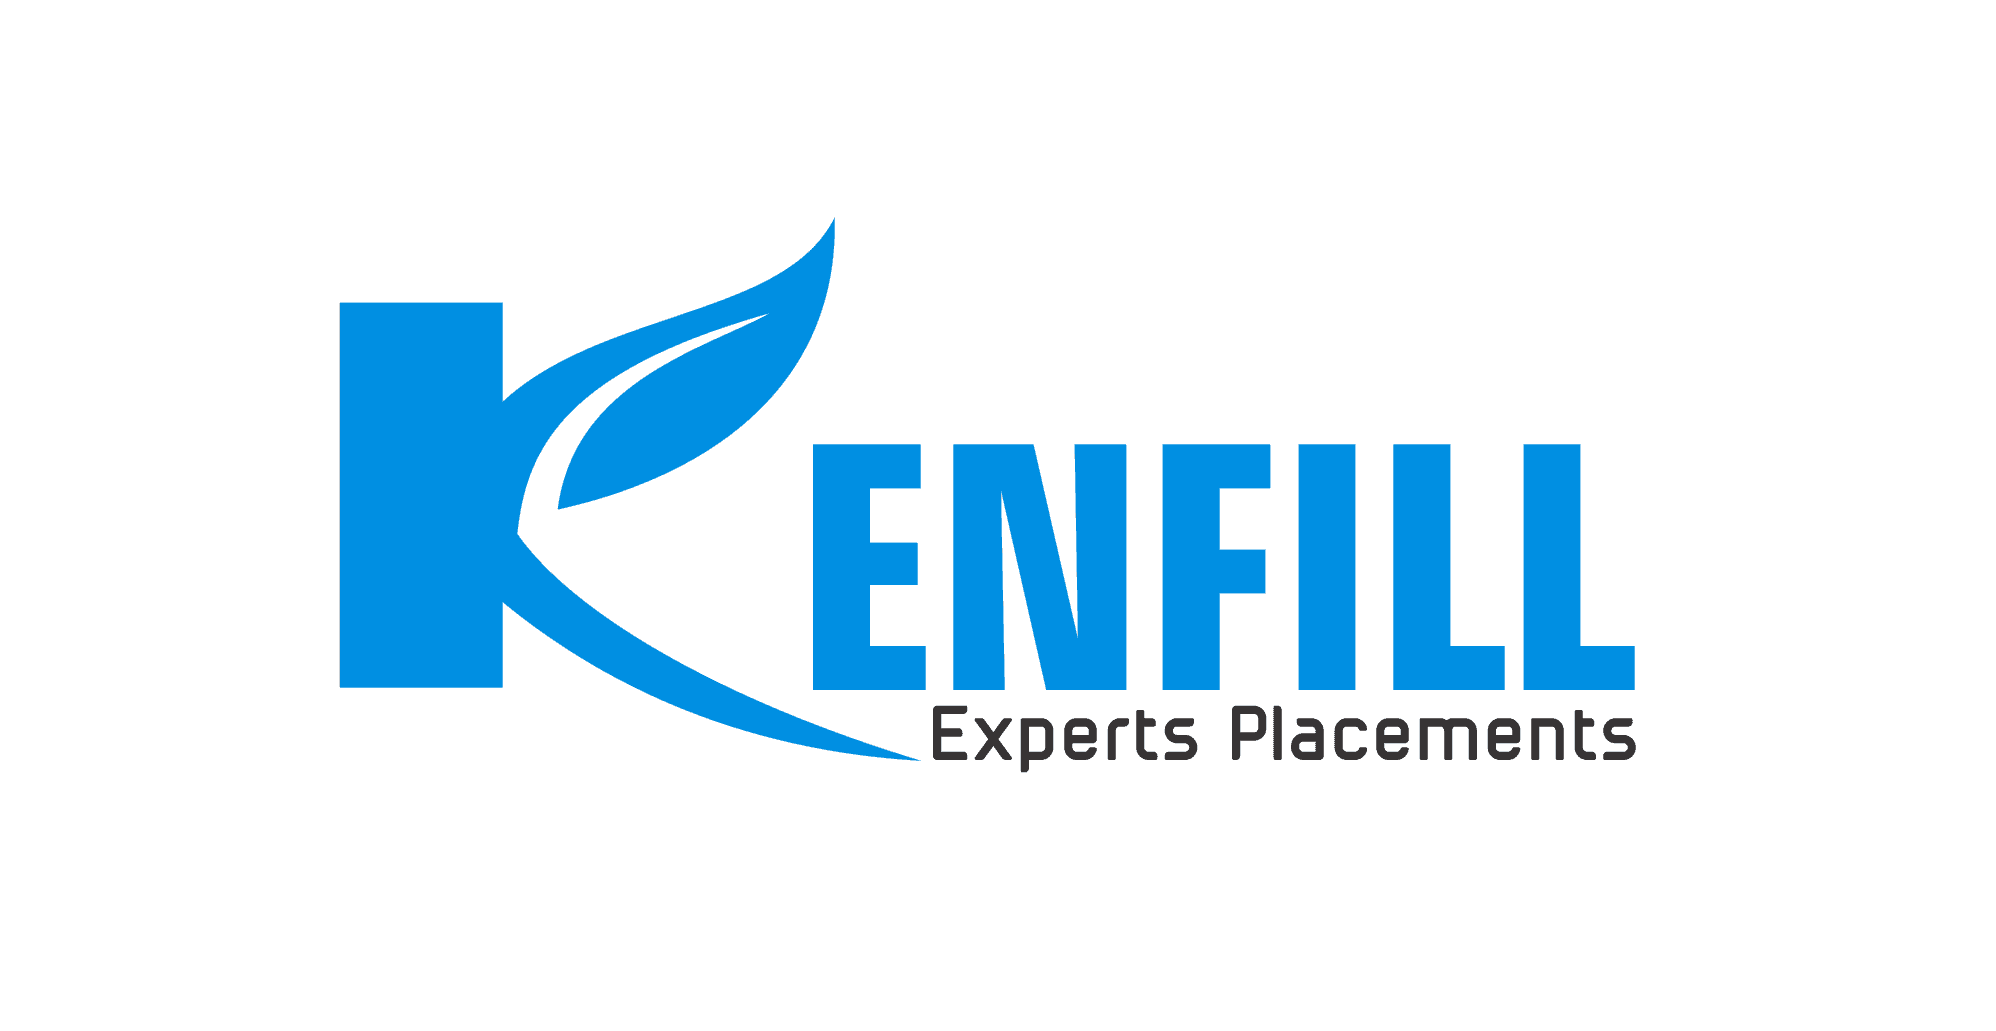 Kenfill Experts Placements